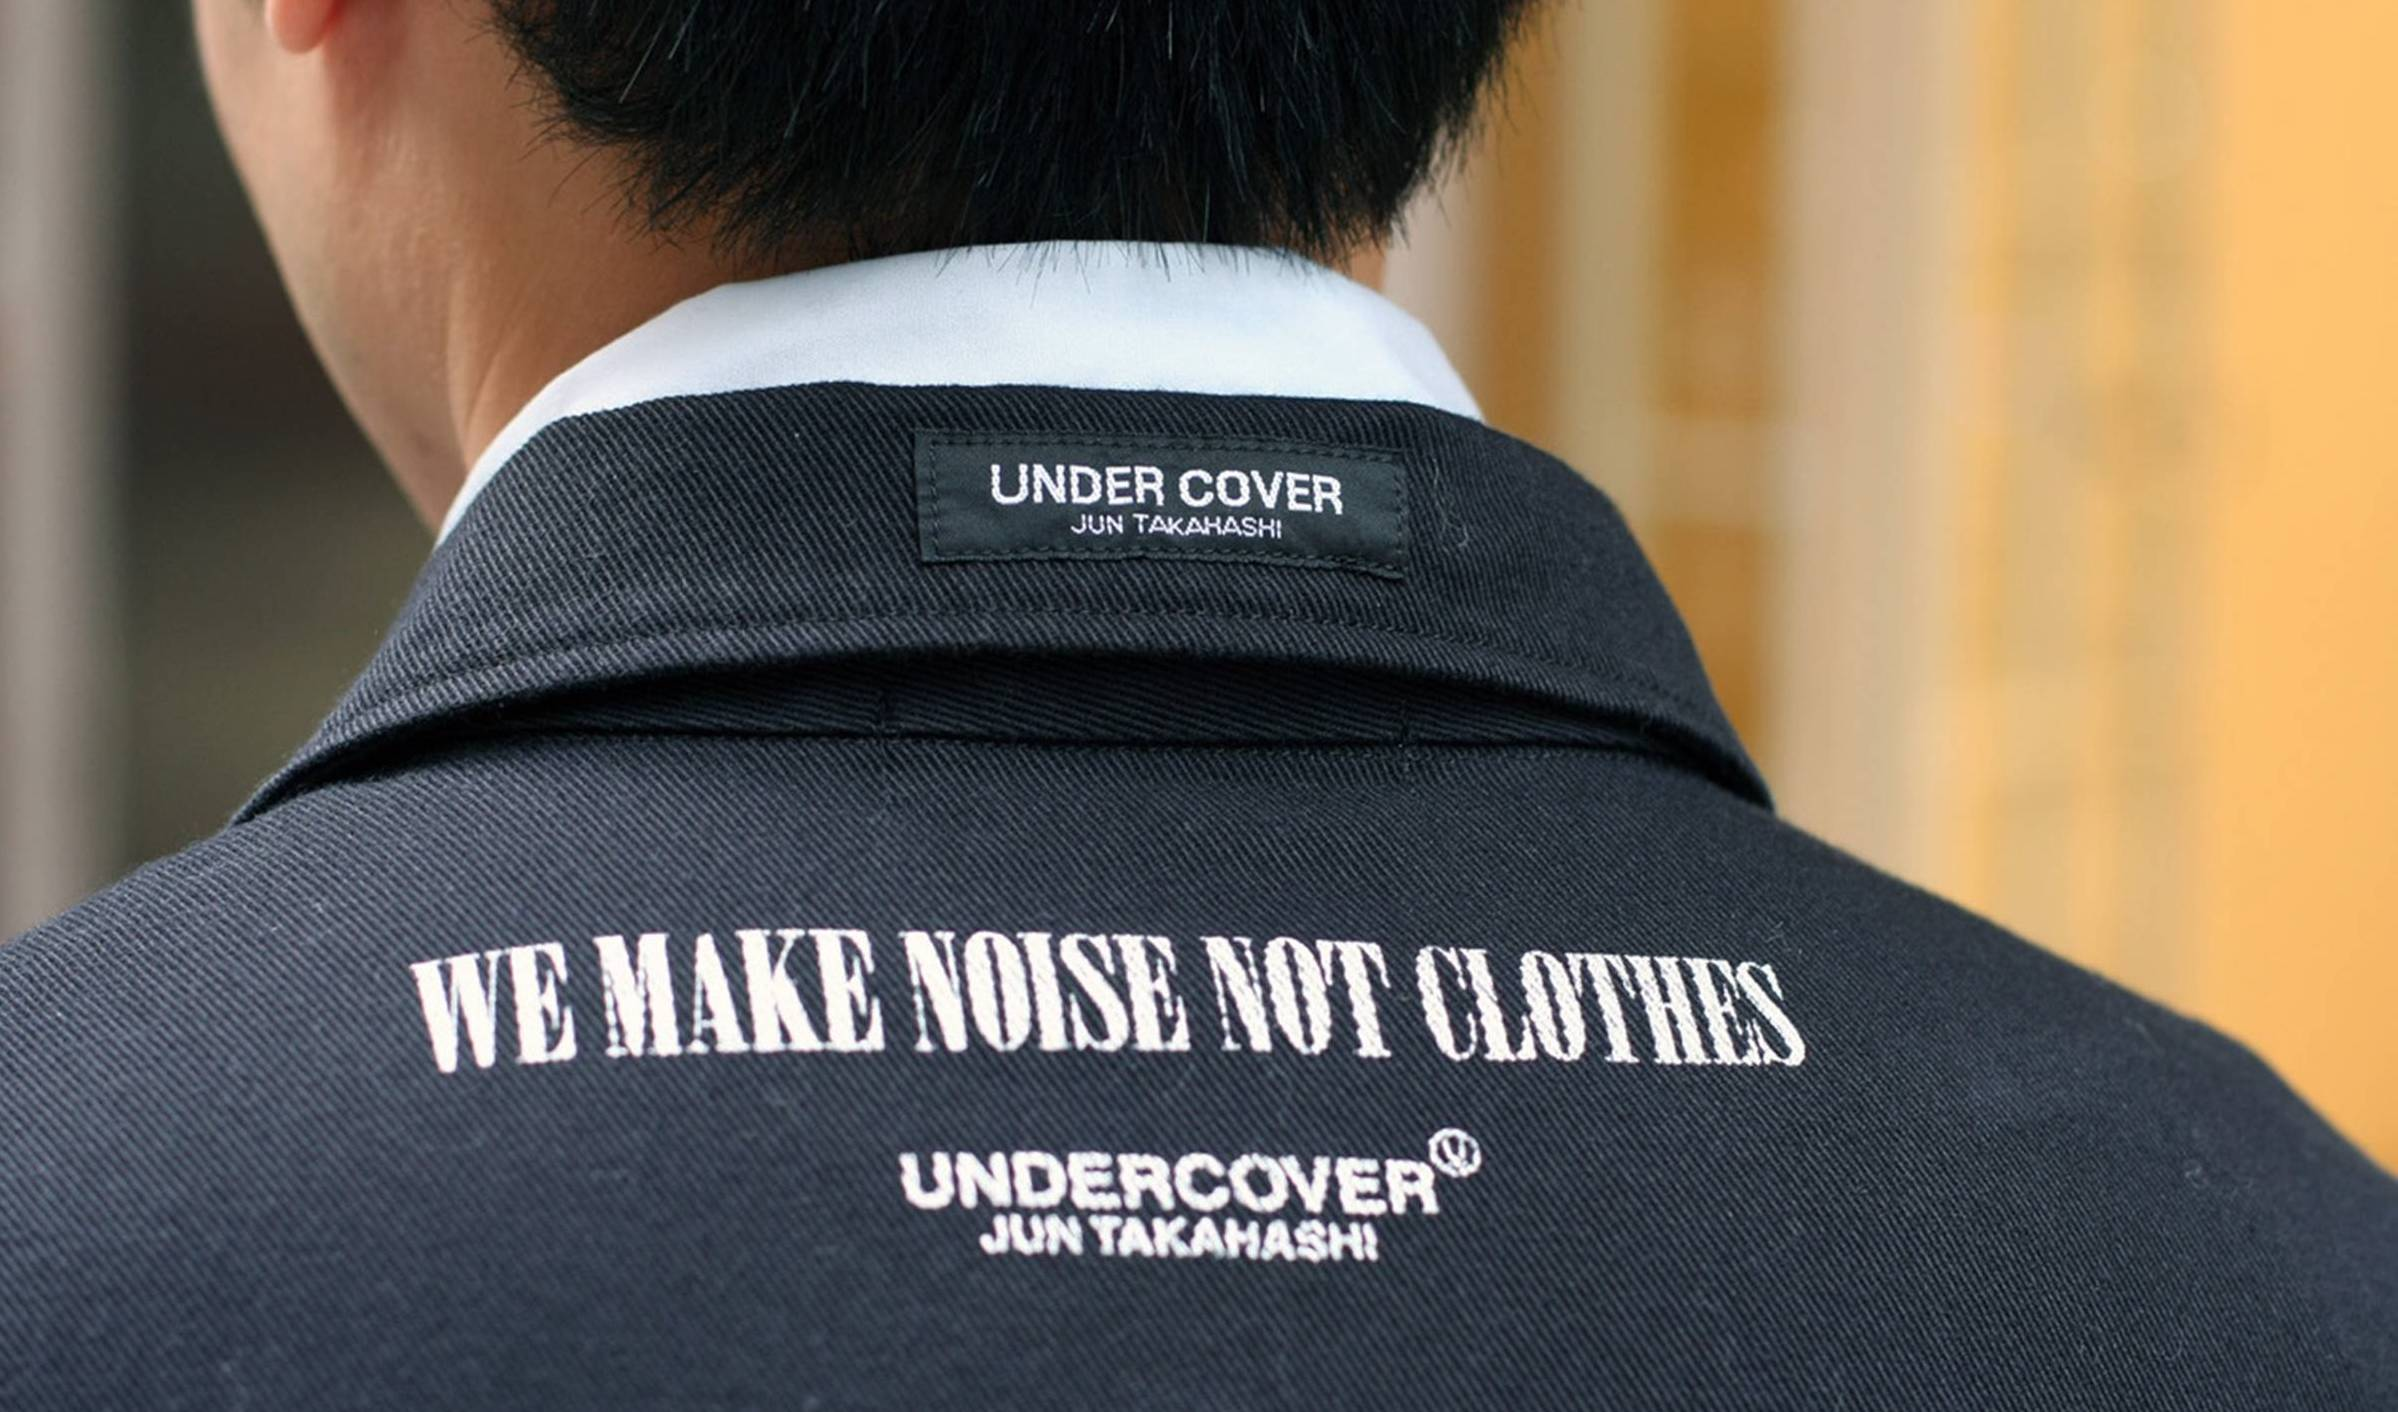 Undercover clothing